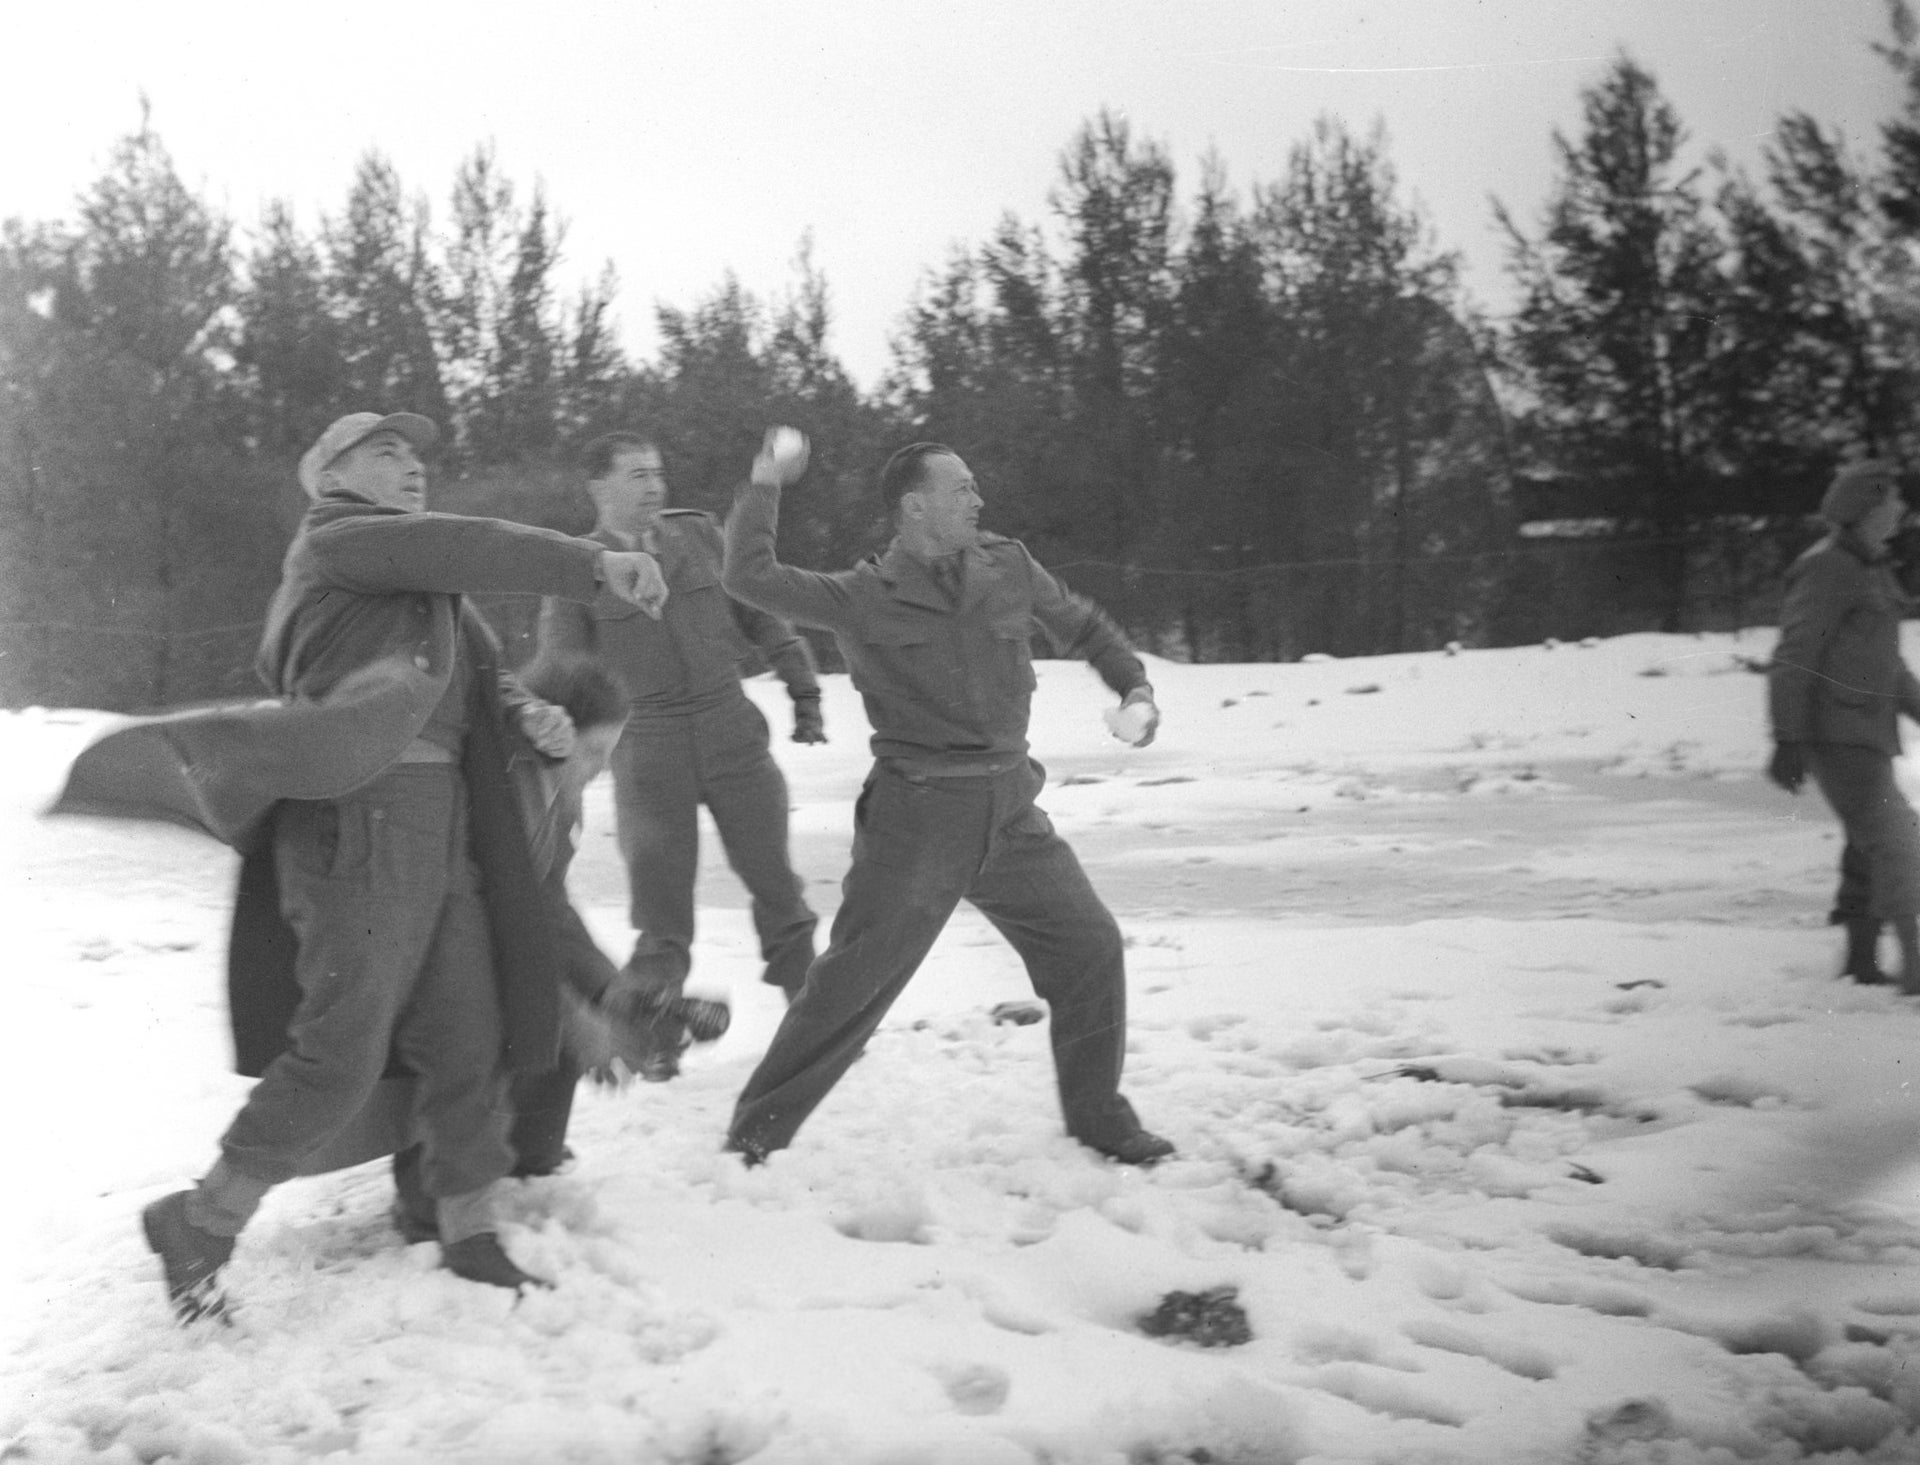 Moshe Dayan playfully throwing a snowball.